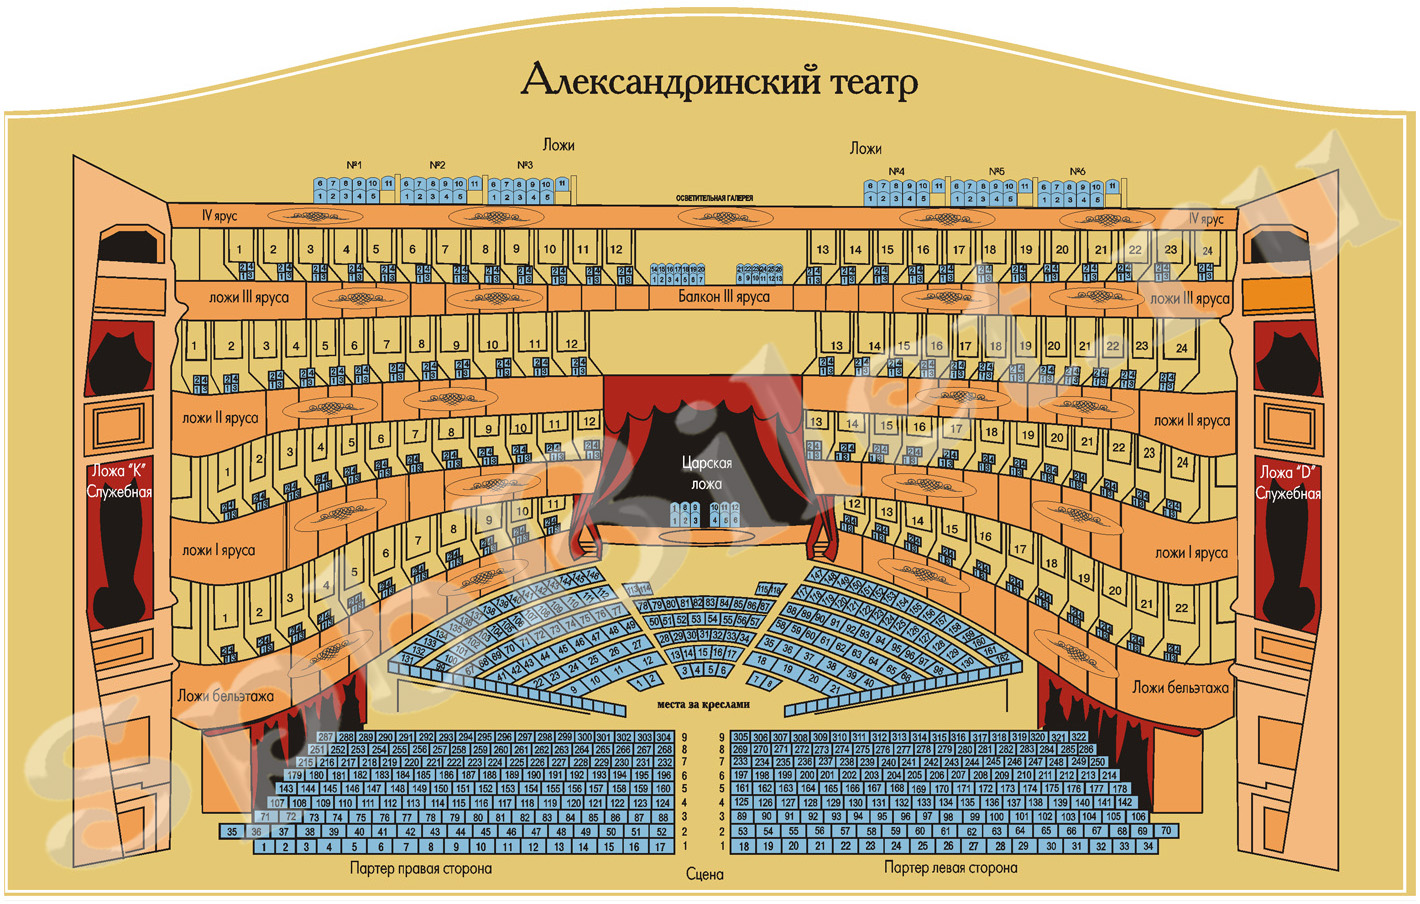 The plan of the hall of the Alexandrinsky Theater with the numbering of seats